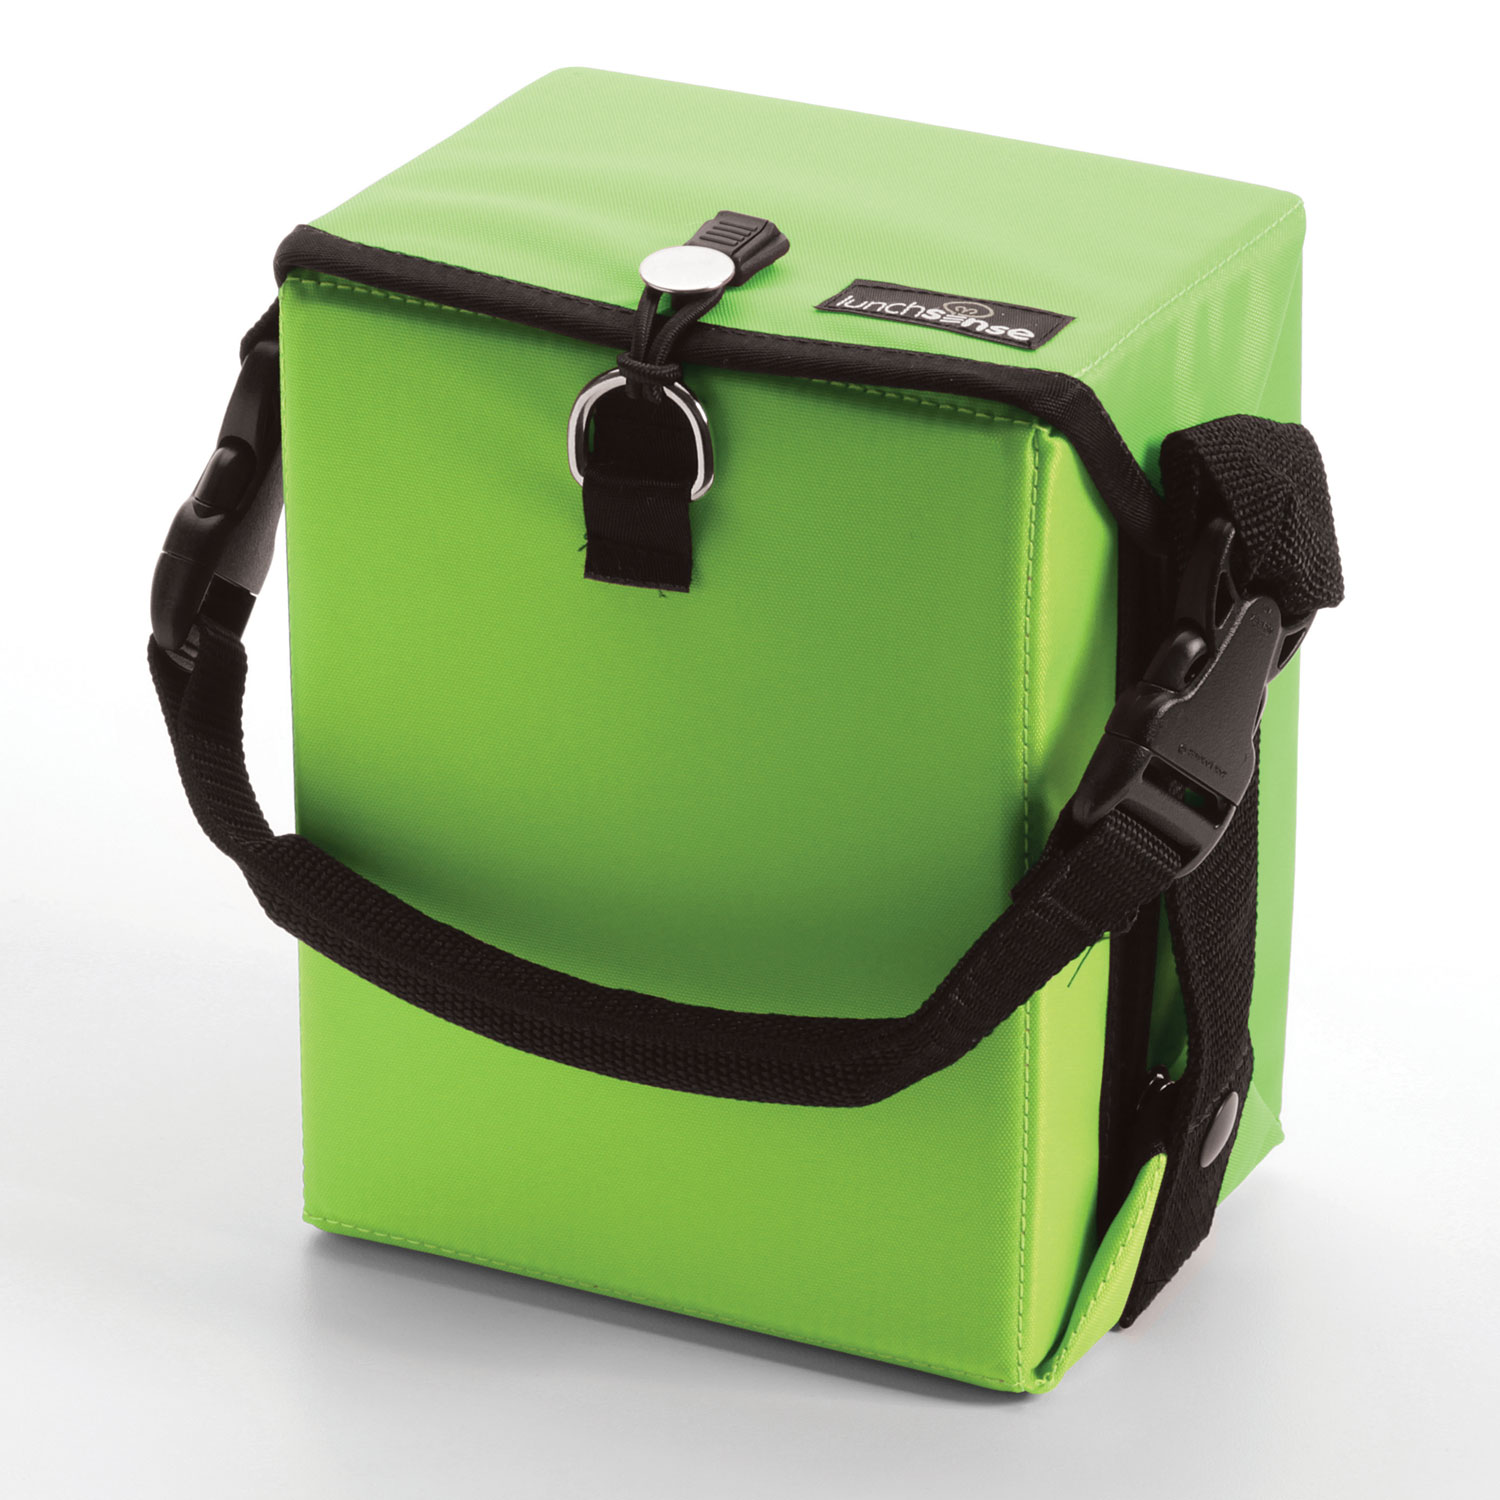 LunchSense Small Lunch Box  W/  Food Storage Container Sets - Lime at Sears.com